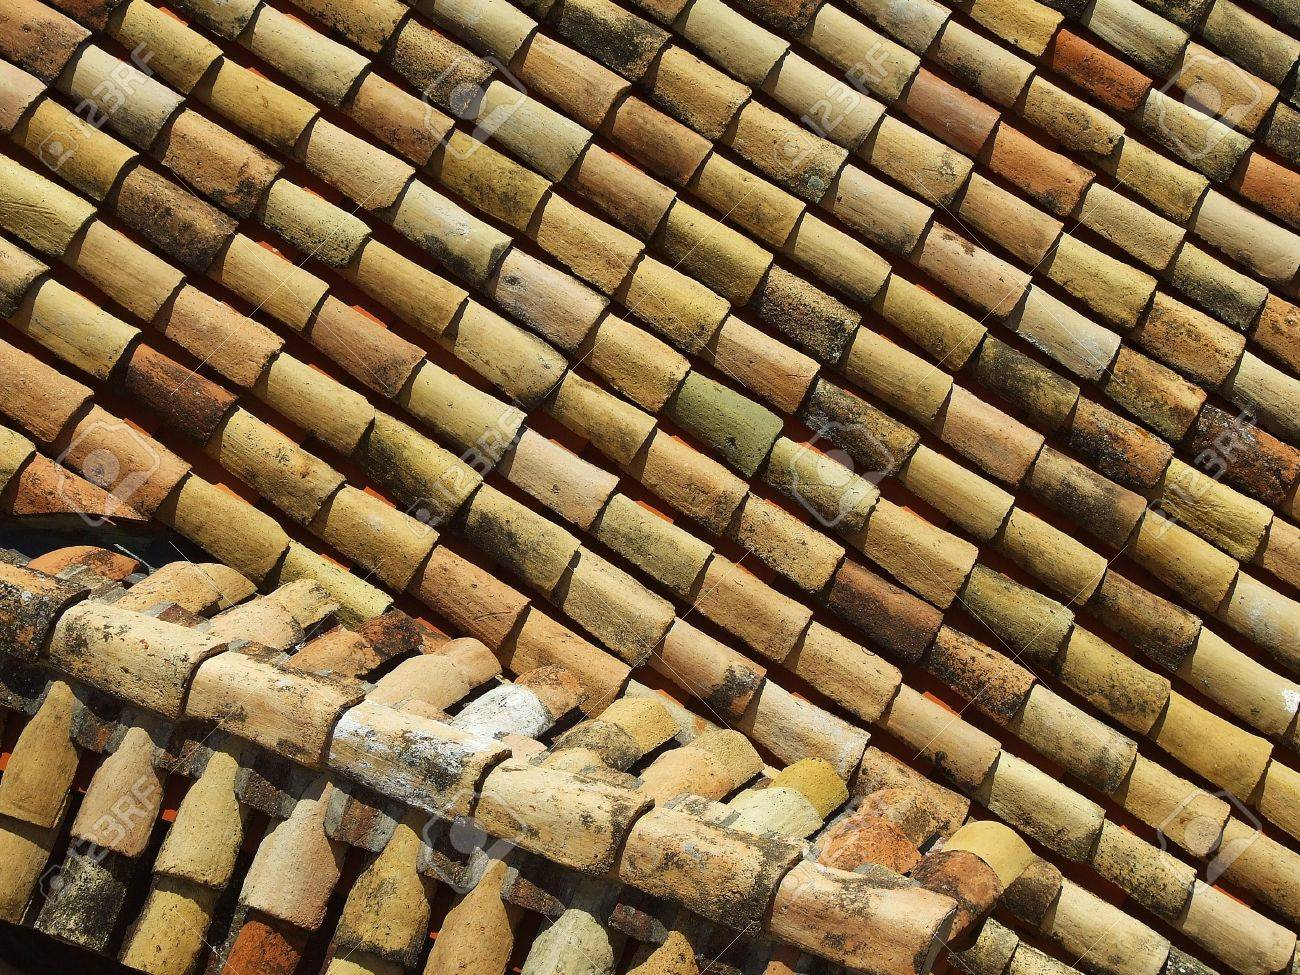 roof covering of ceramic rustic tiles aerial view background stock photo 7071950 - Roof Covering